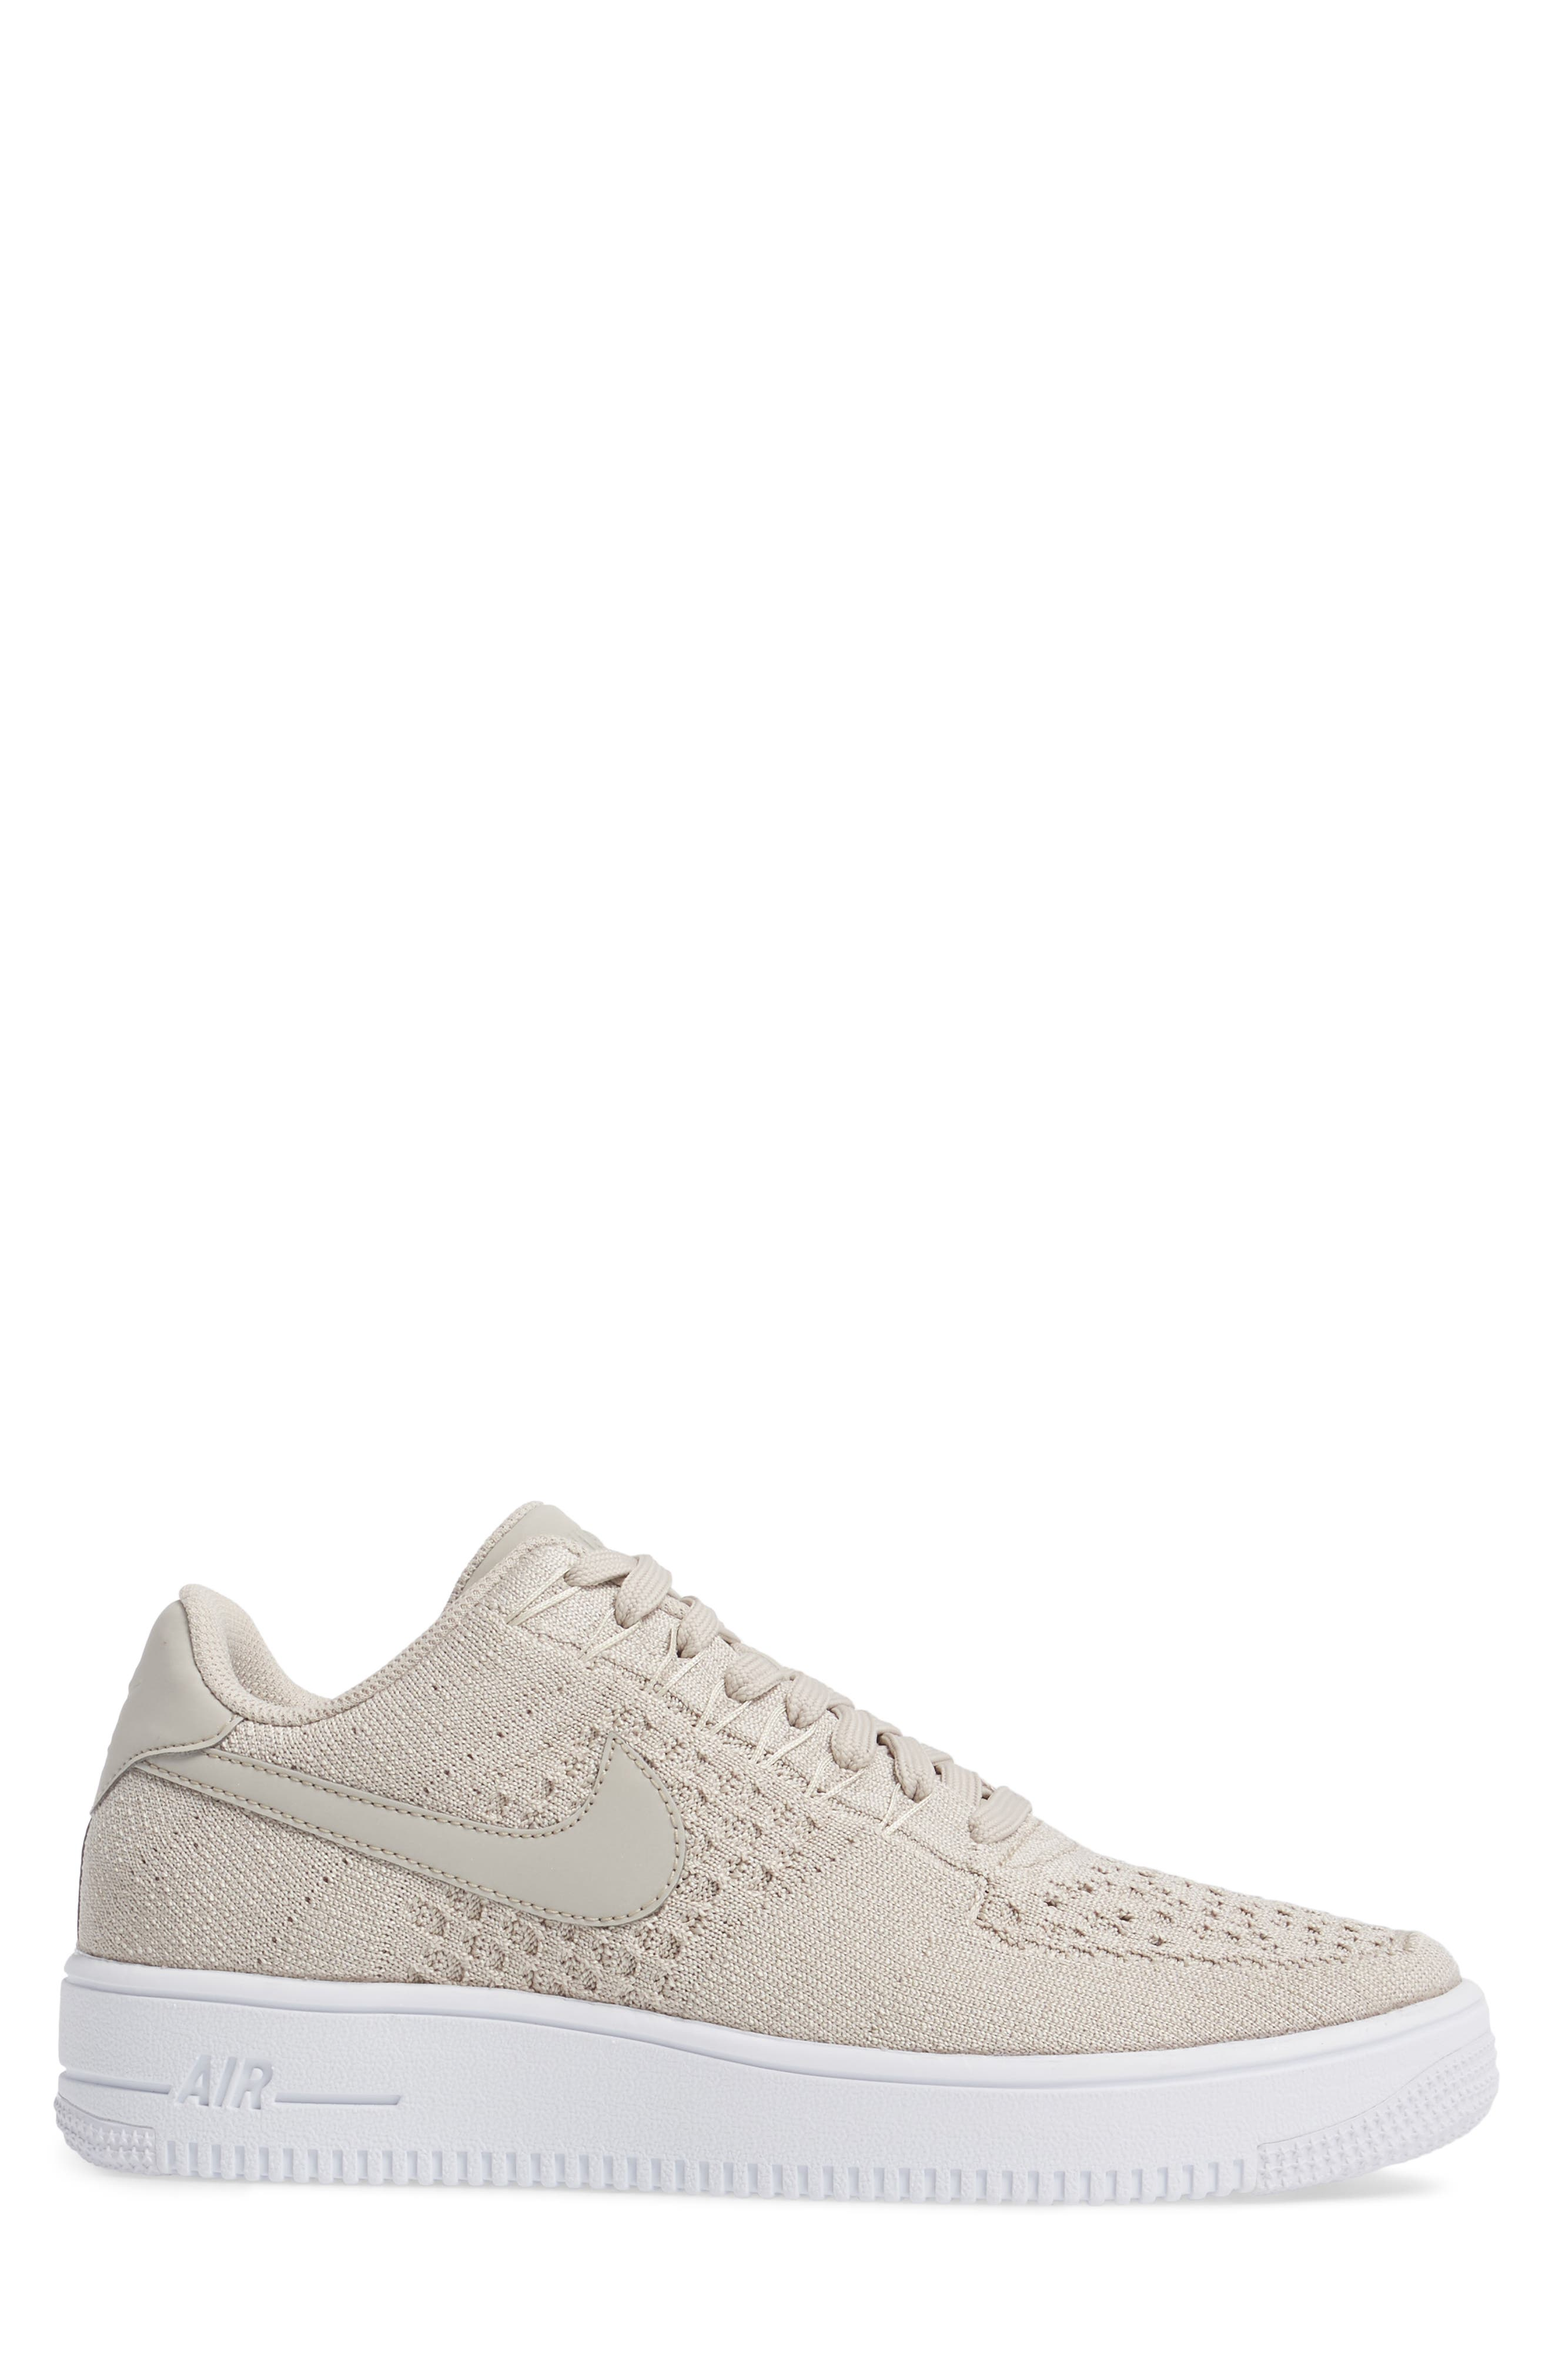 Air Force 1 Ultra Flyknit Low Sneaker,                             Alternate thumbnail 3, color,                             String/ String/ White